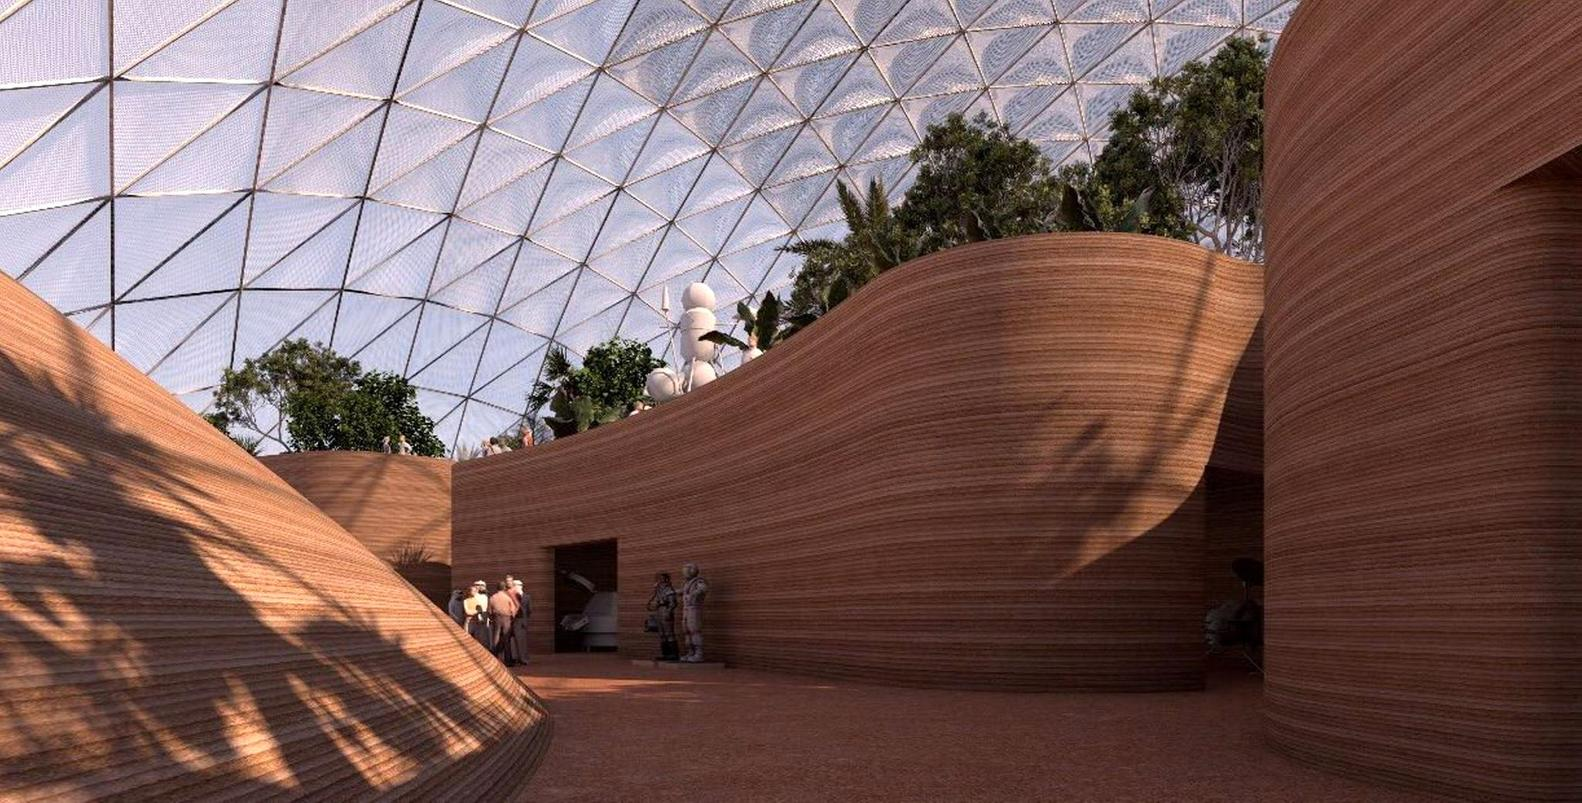 Mars Science City. foto : archdaily